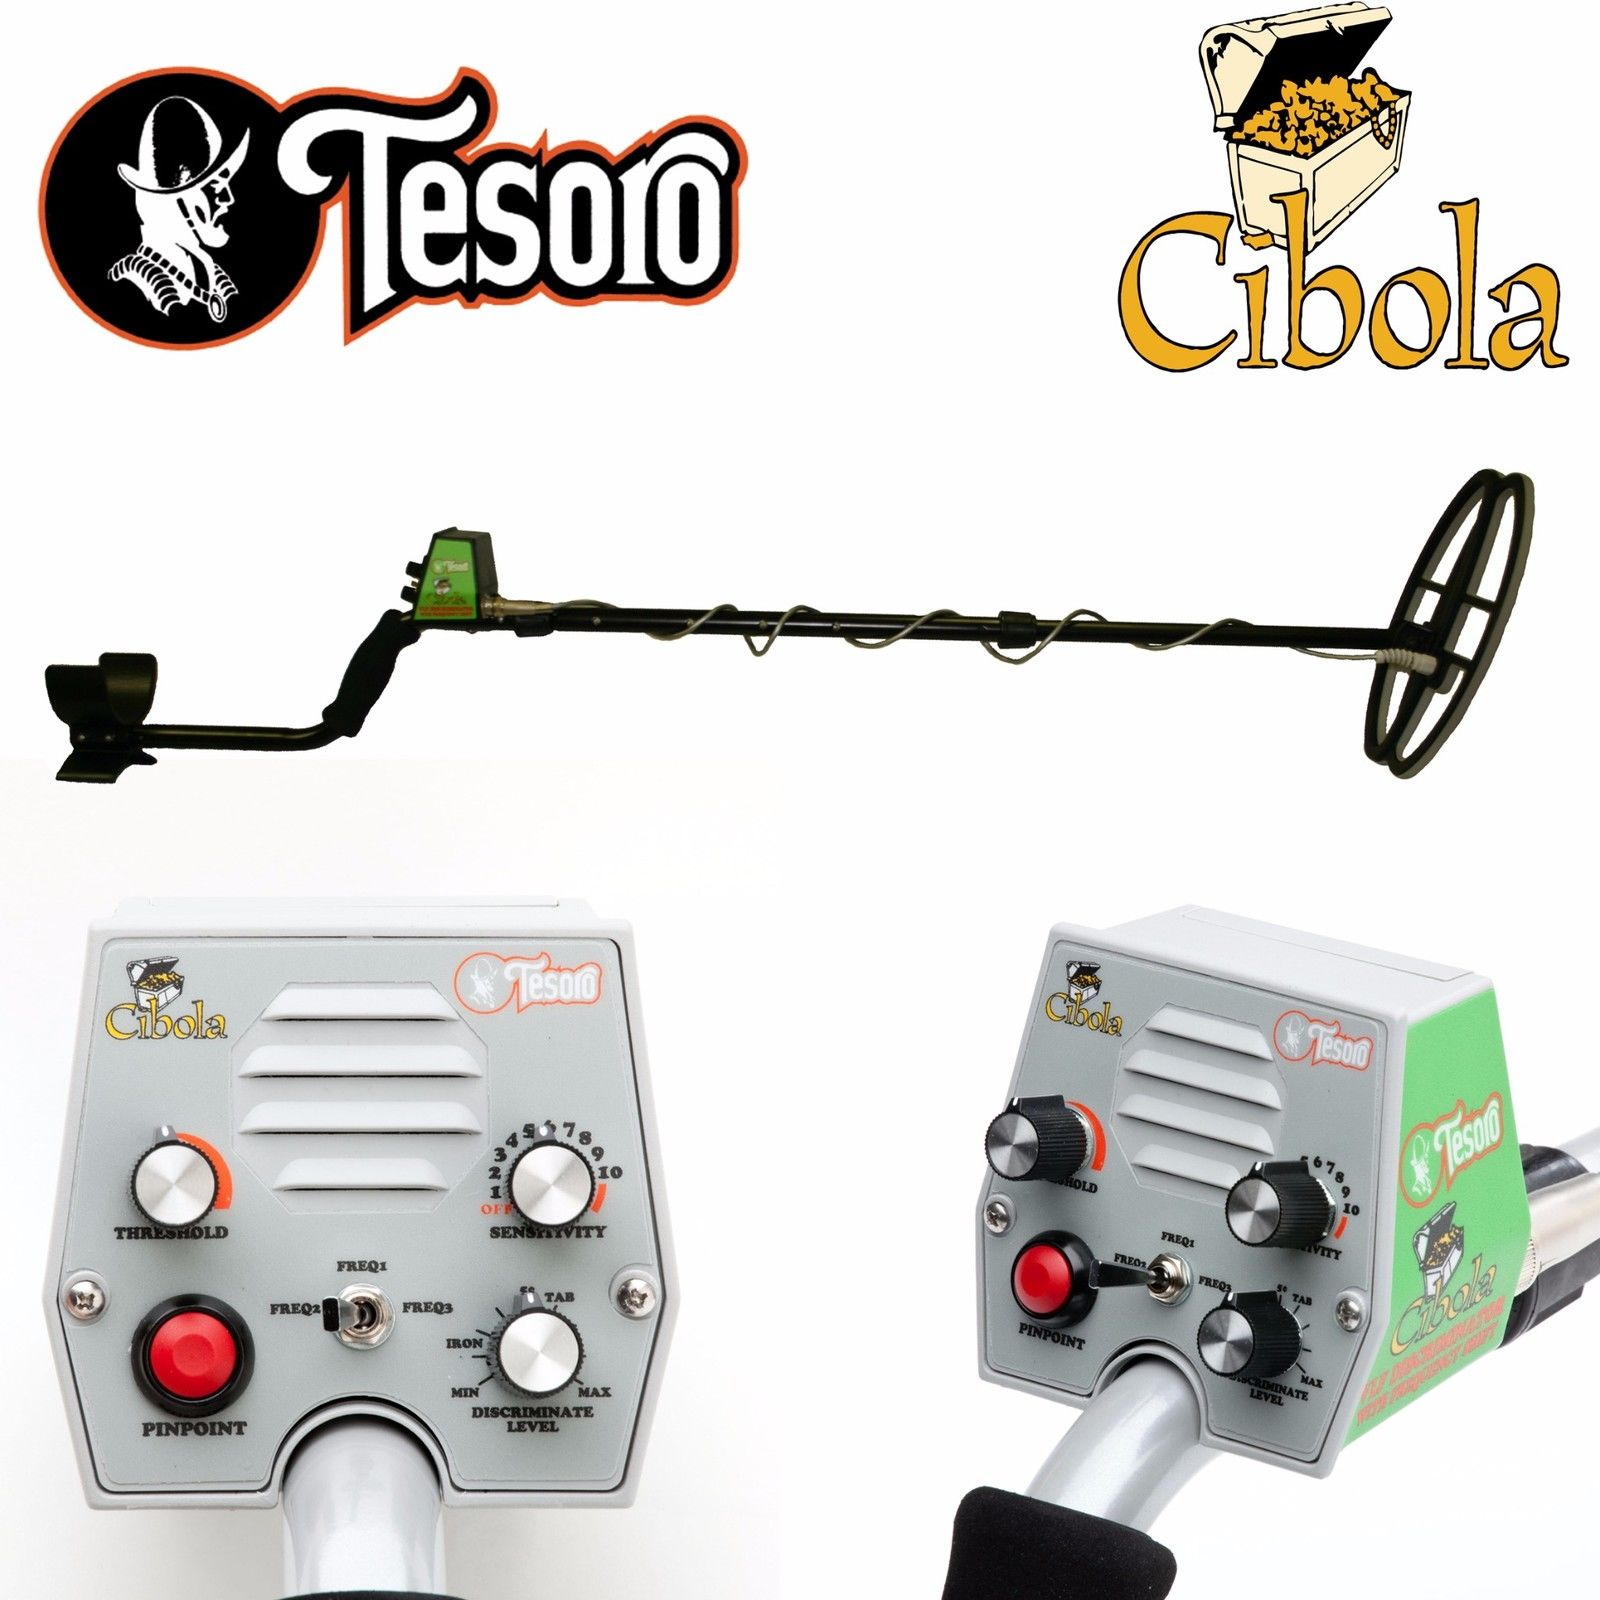 Tesoro Cibola Black Metal Detector with 11inch x 8inch Search Coil and Lifetime Warranty